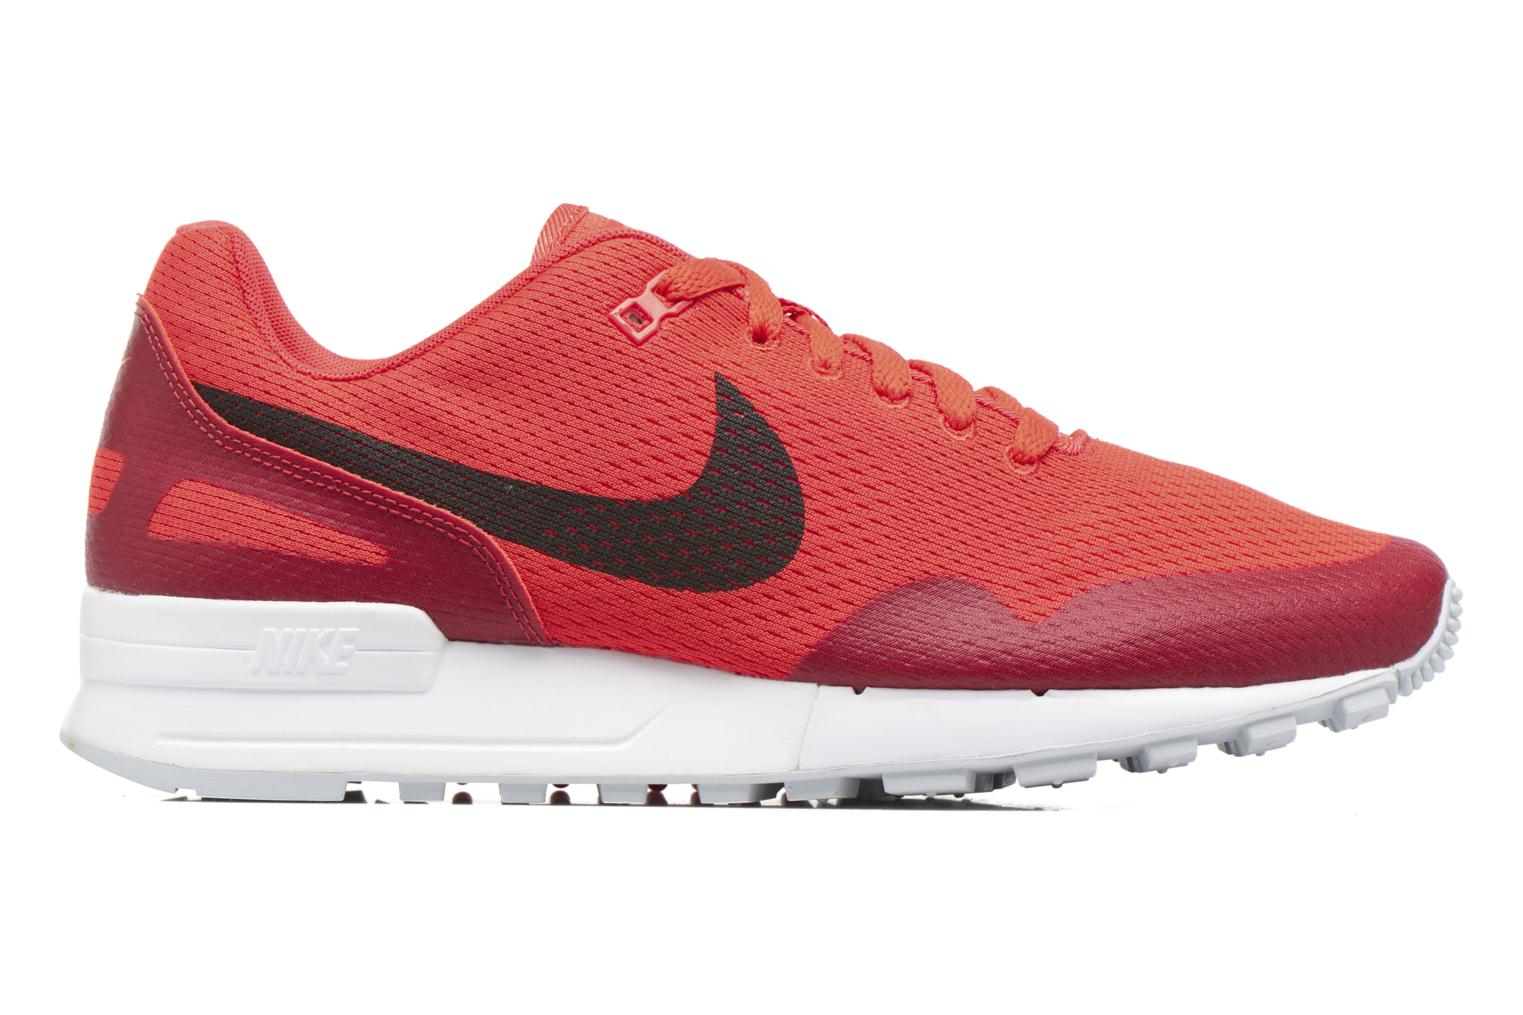 Nike Air Pegasus '89 Egd Max Orange/White-Hyper Orange-Deep Night